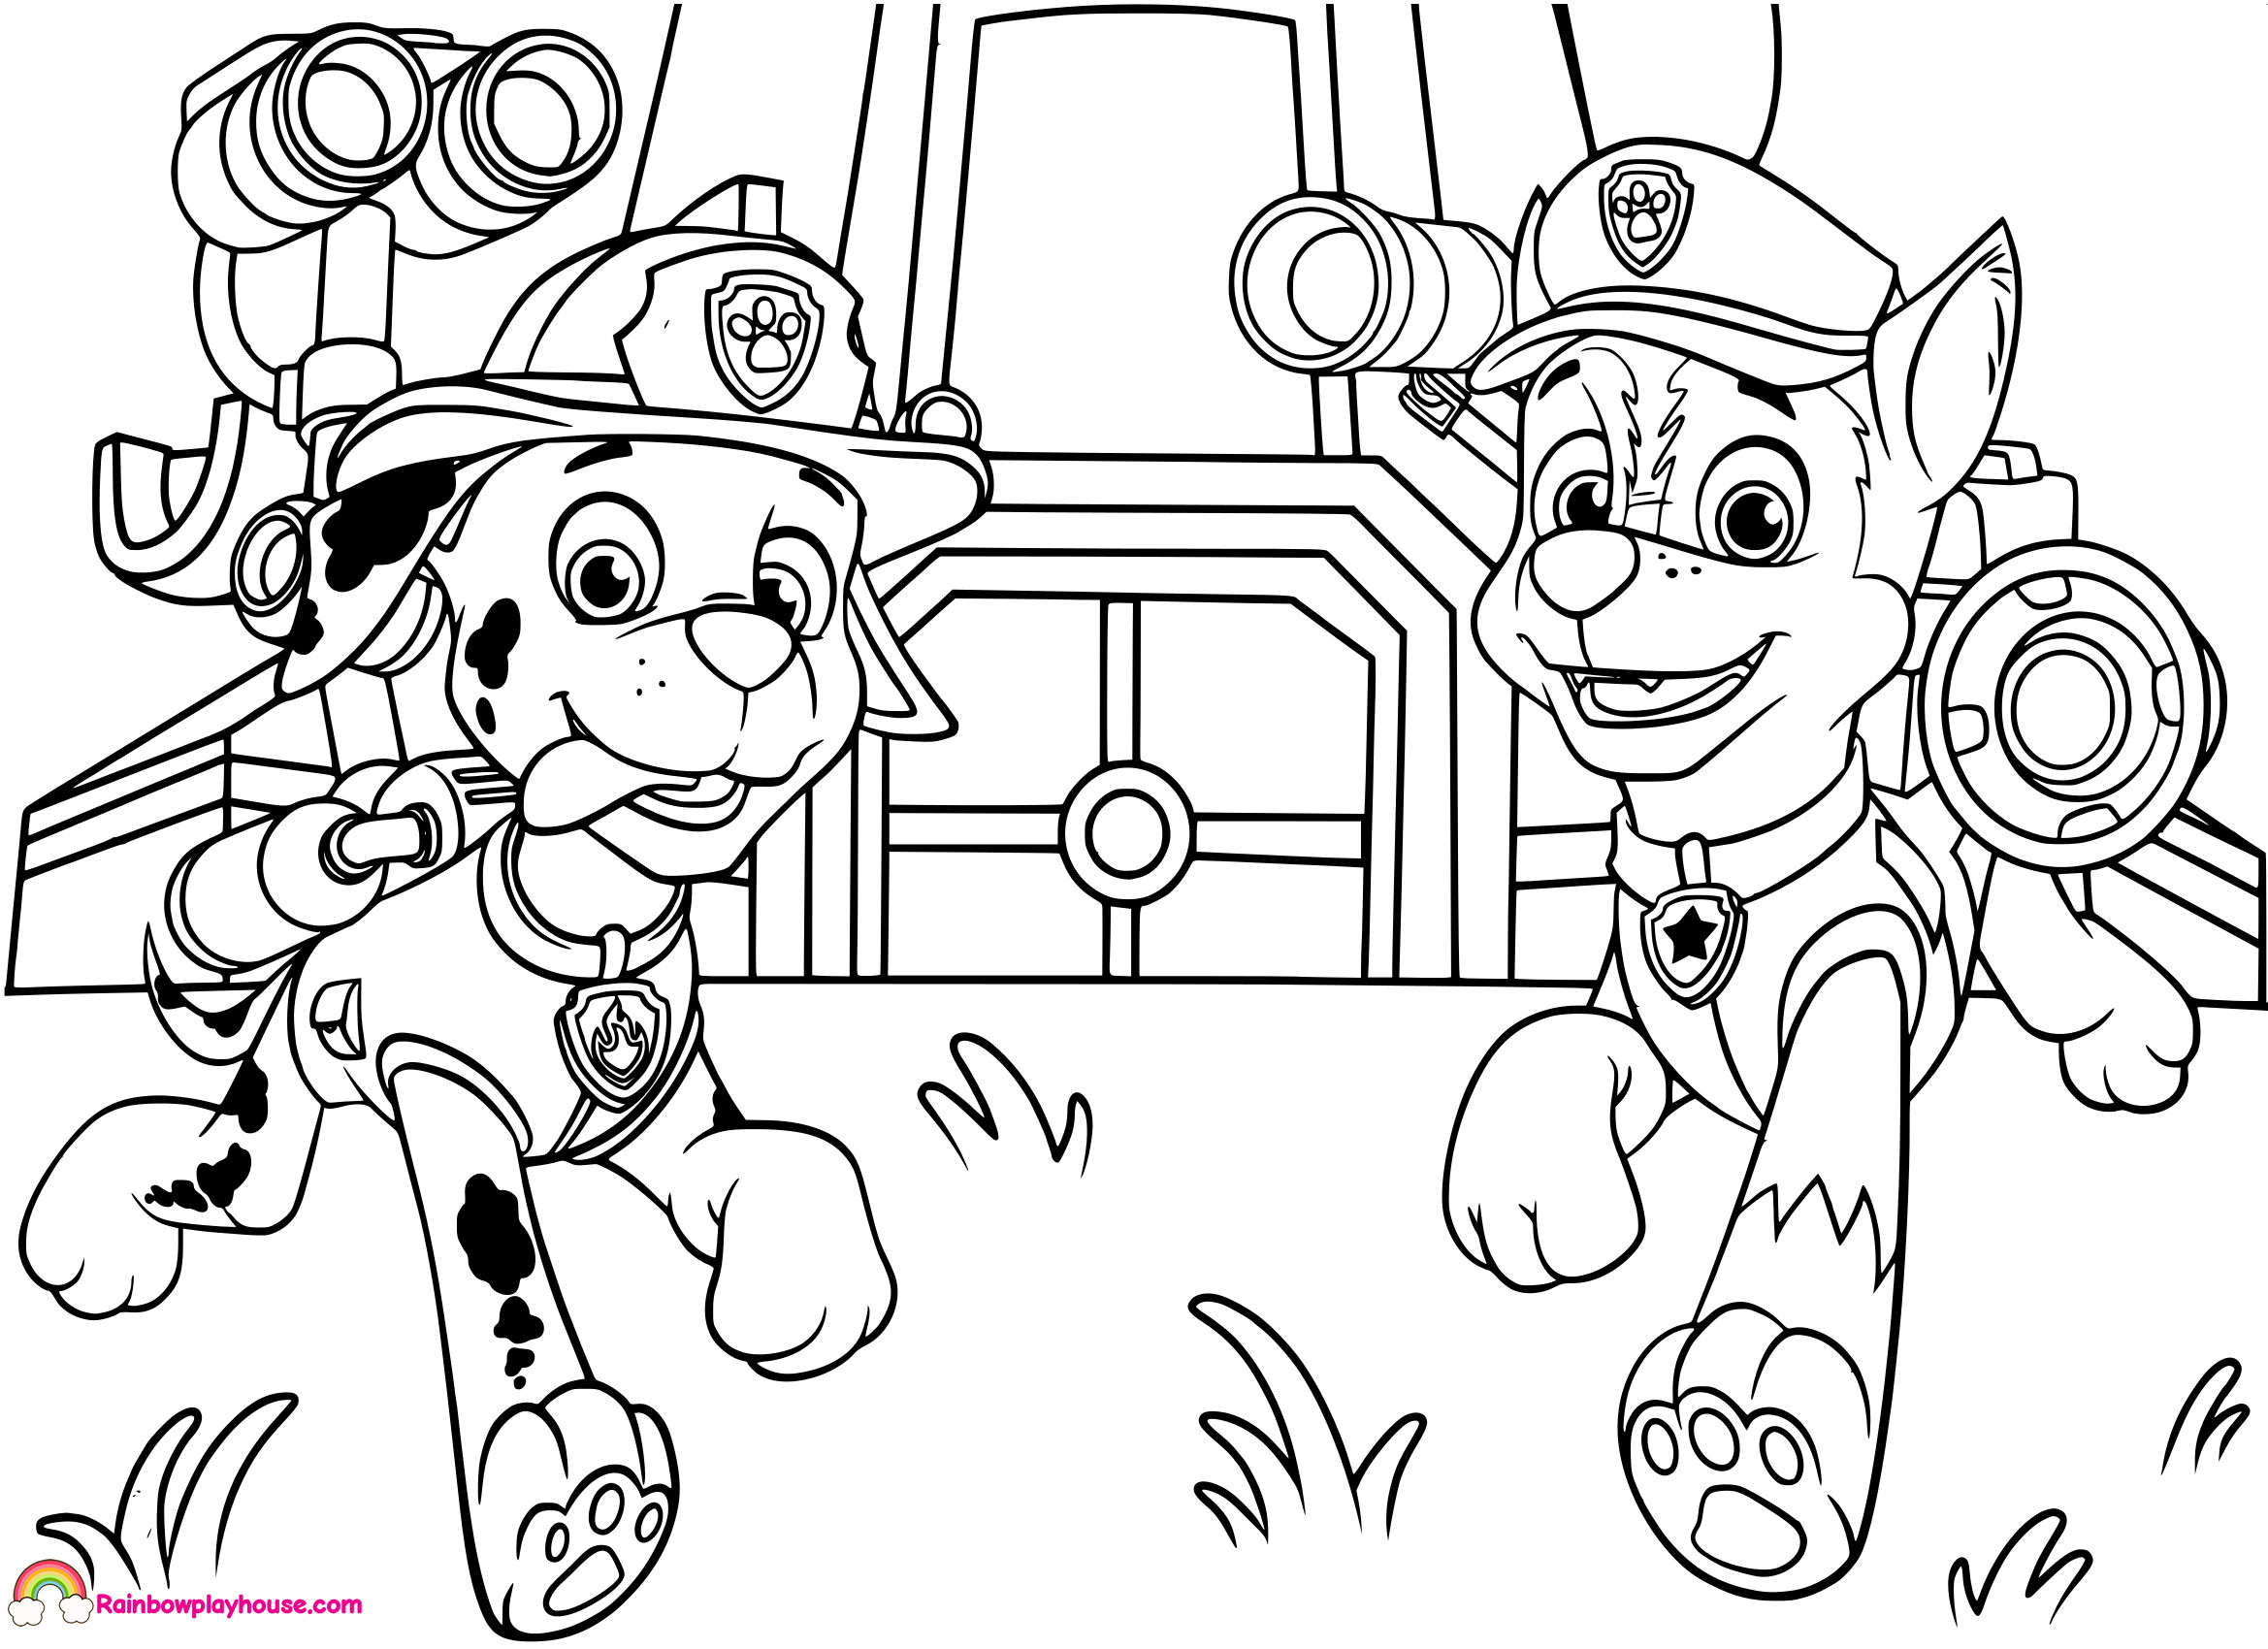 Coloring Pages Paw Patrol Chase : Coloring Pages ...